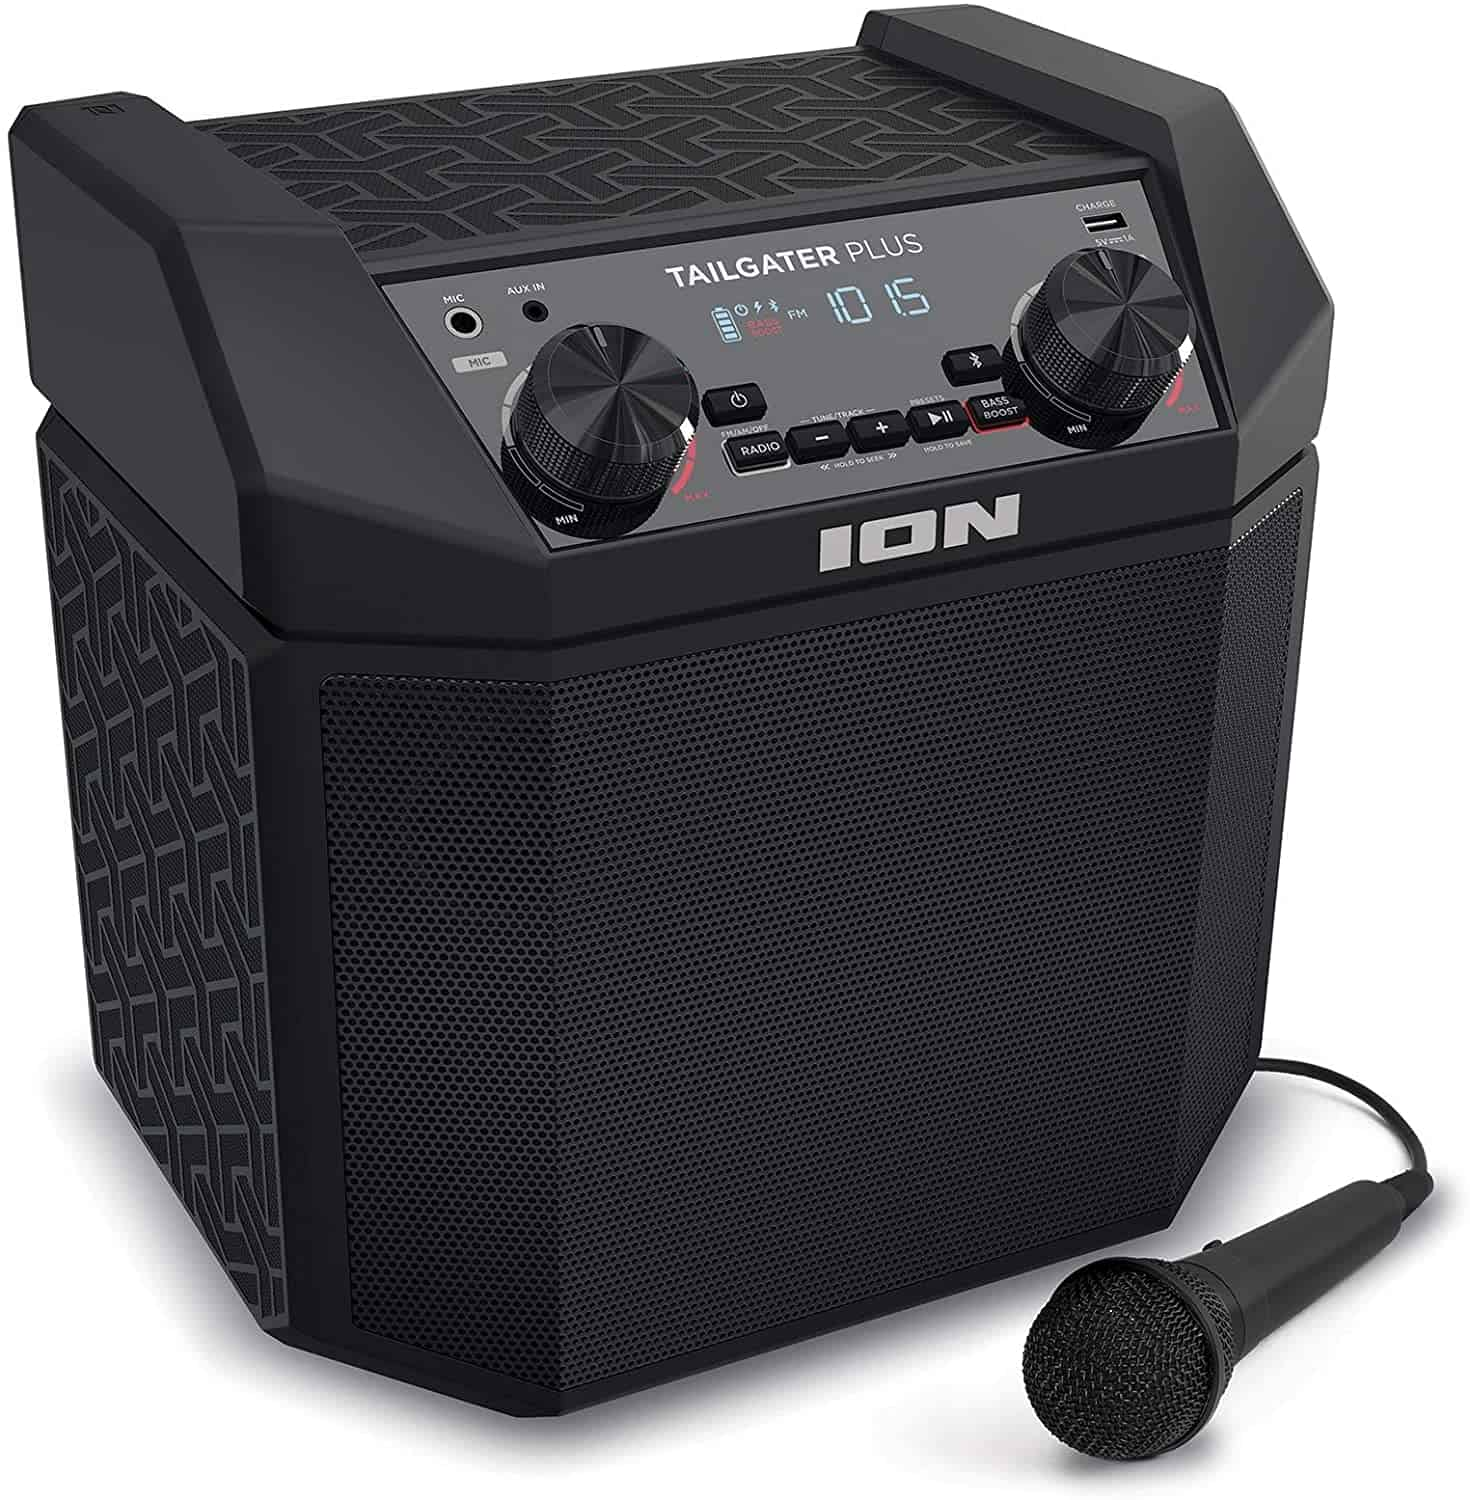 Best battery powered PA system: Ion Audio tailgate Plus